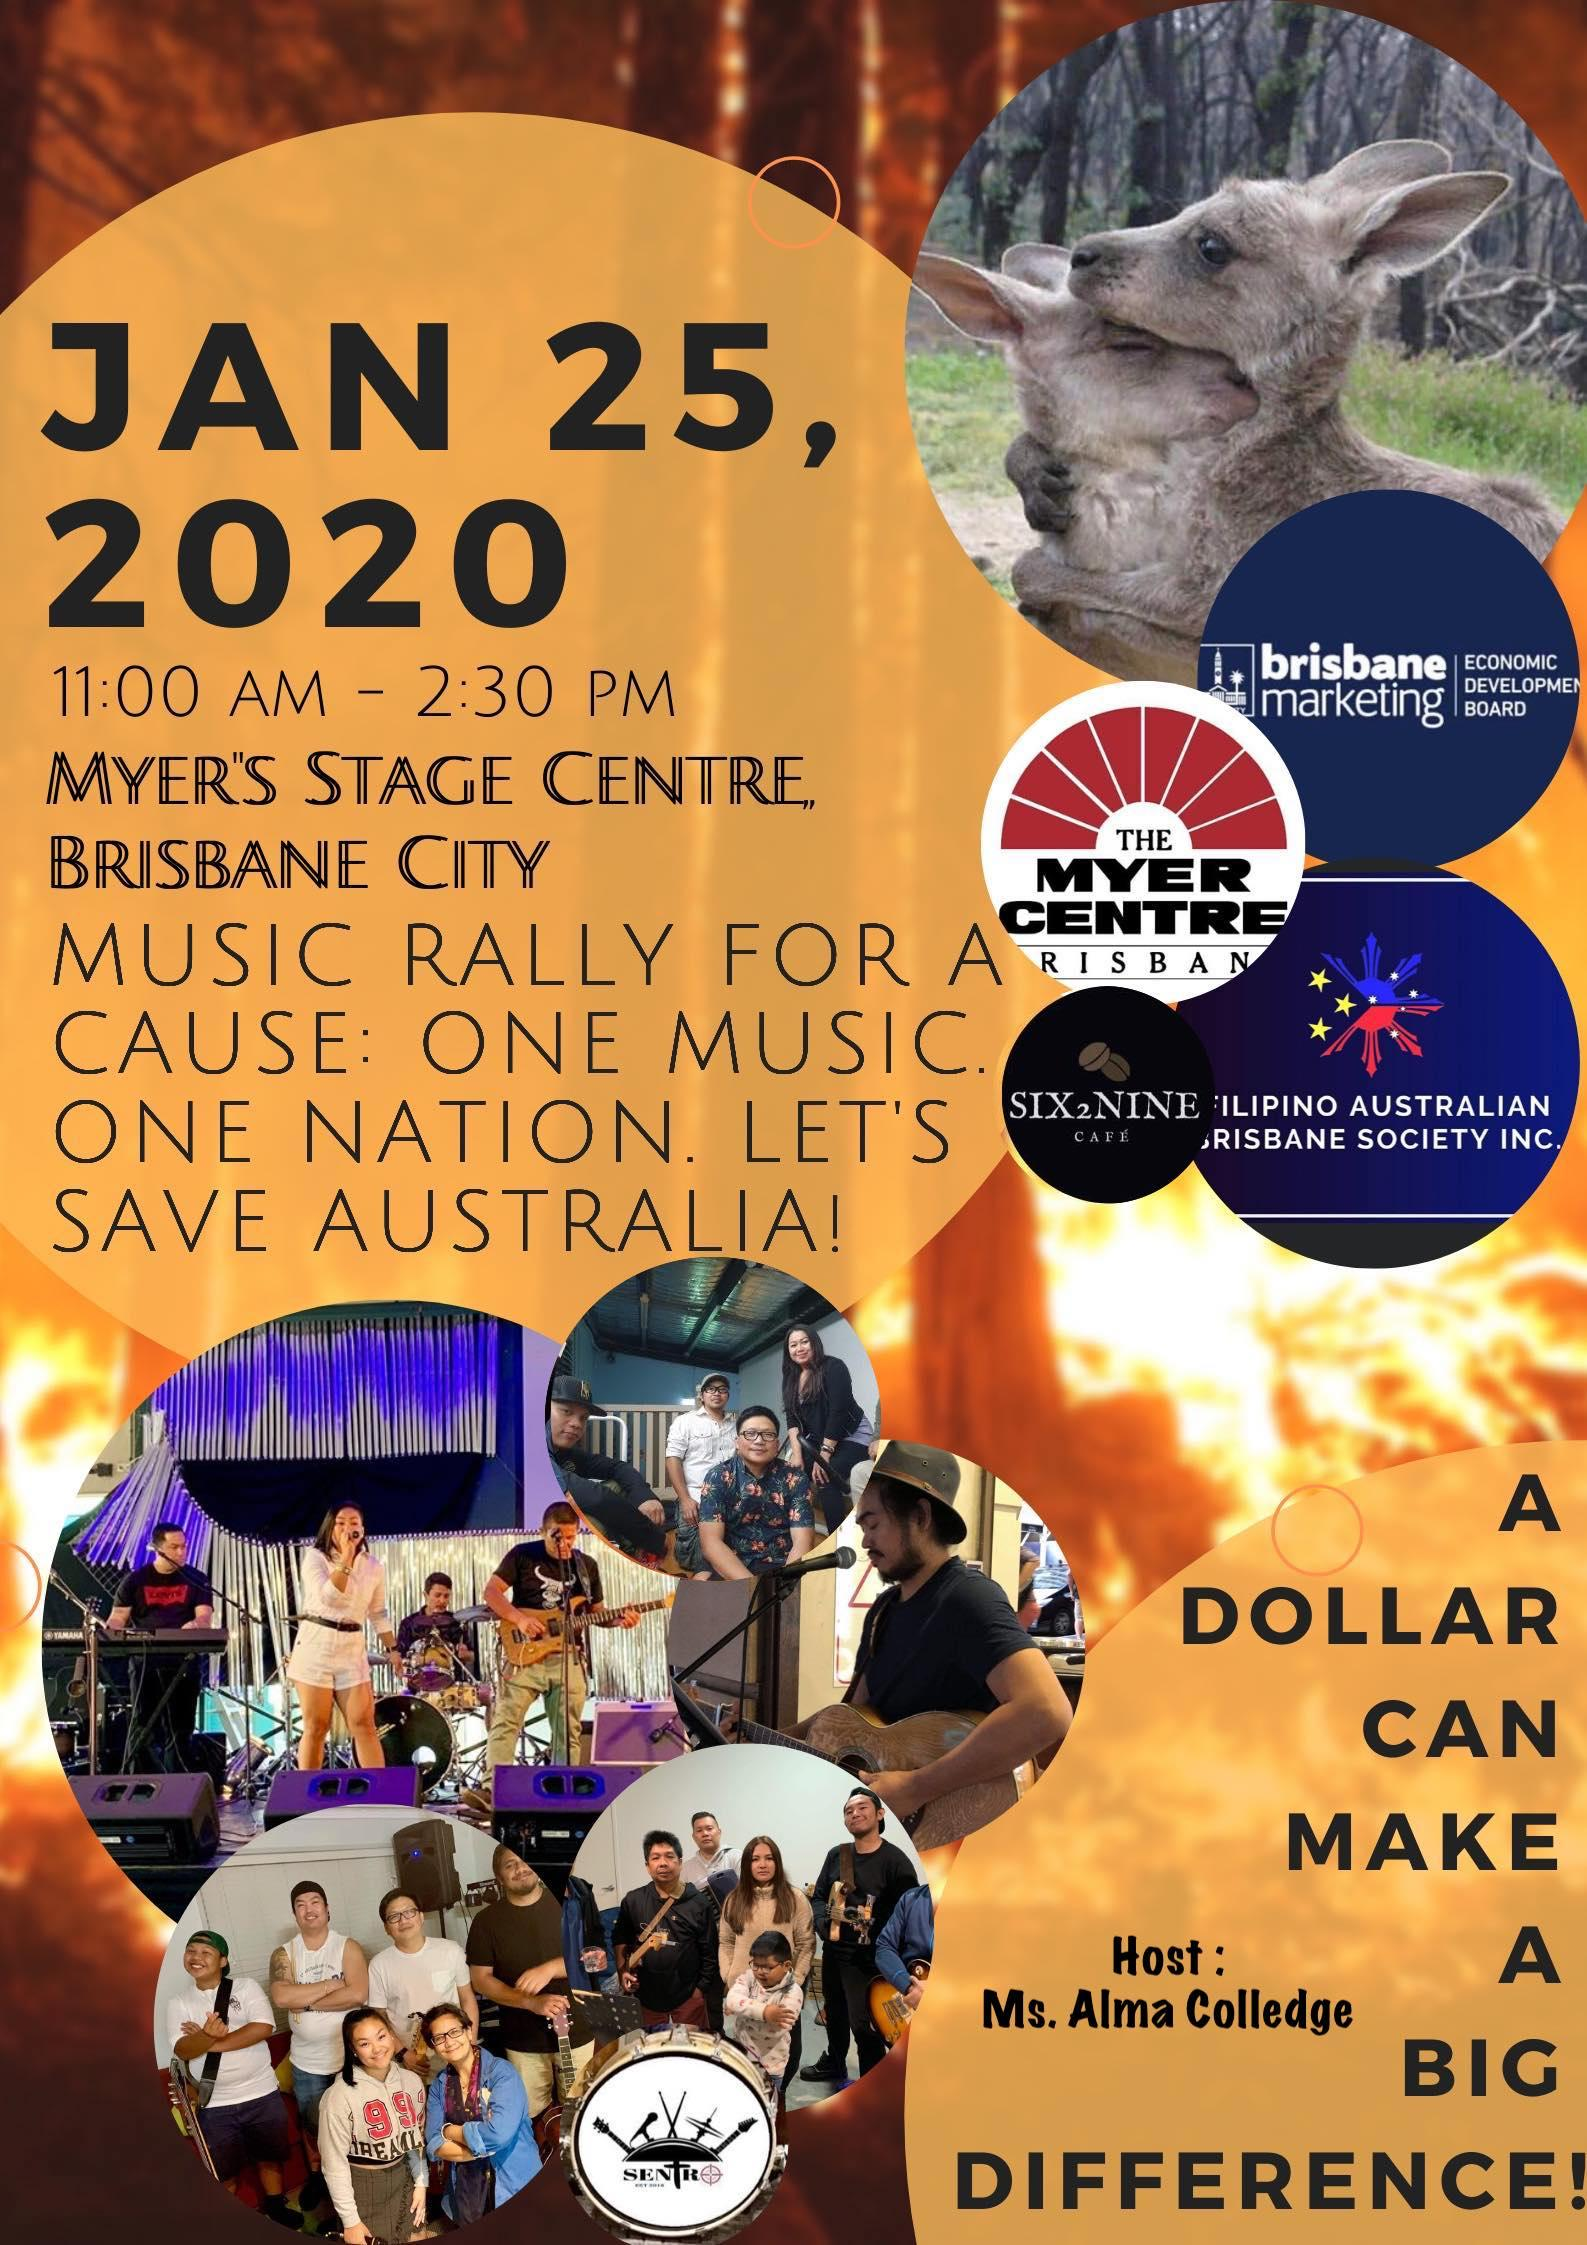 Music Rally for a Cause - One Music. One Nation - Let's Save Australia